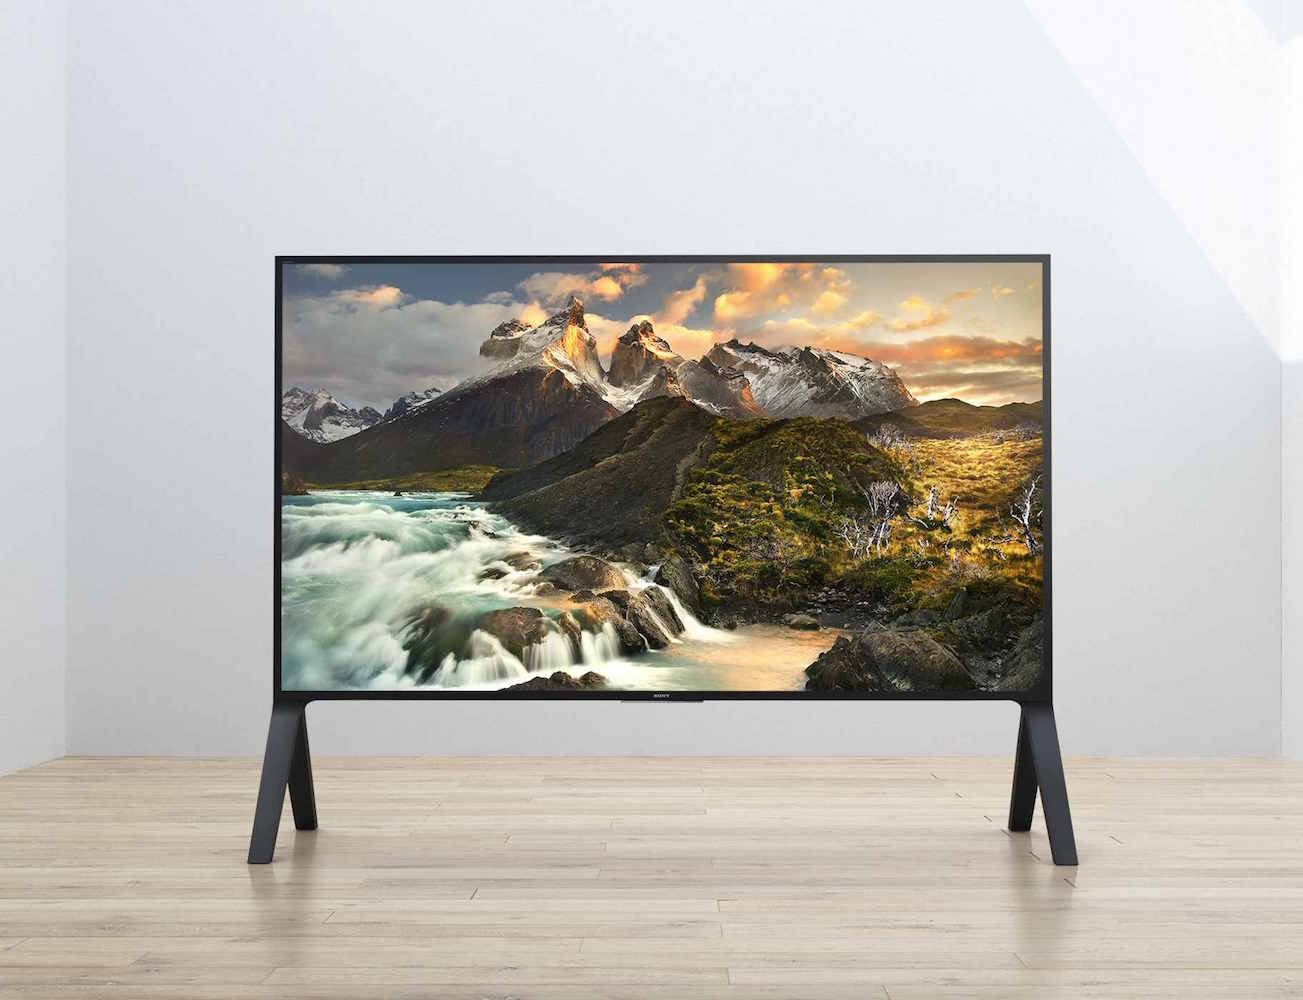 Sony-Z9D-4K-HDR-TV-with-Android-01